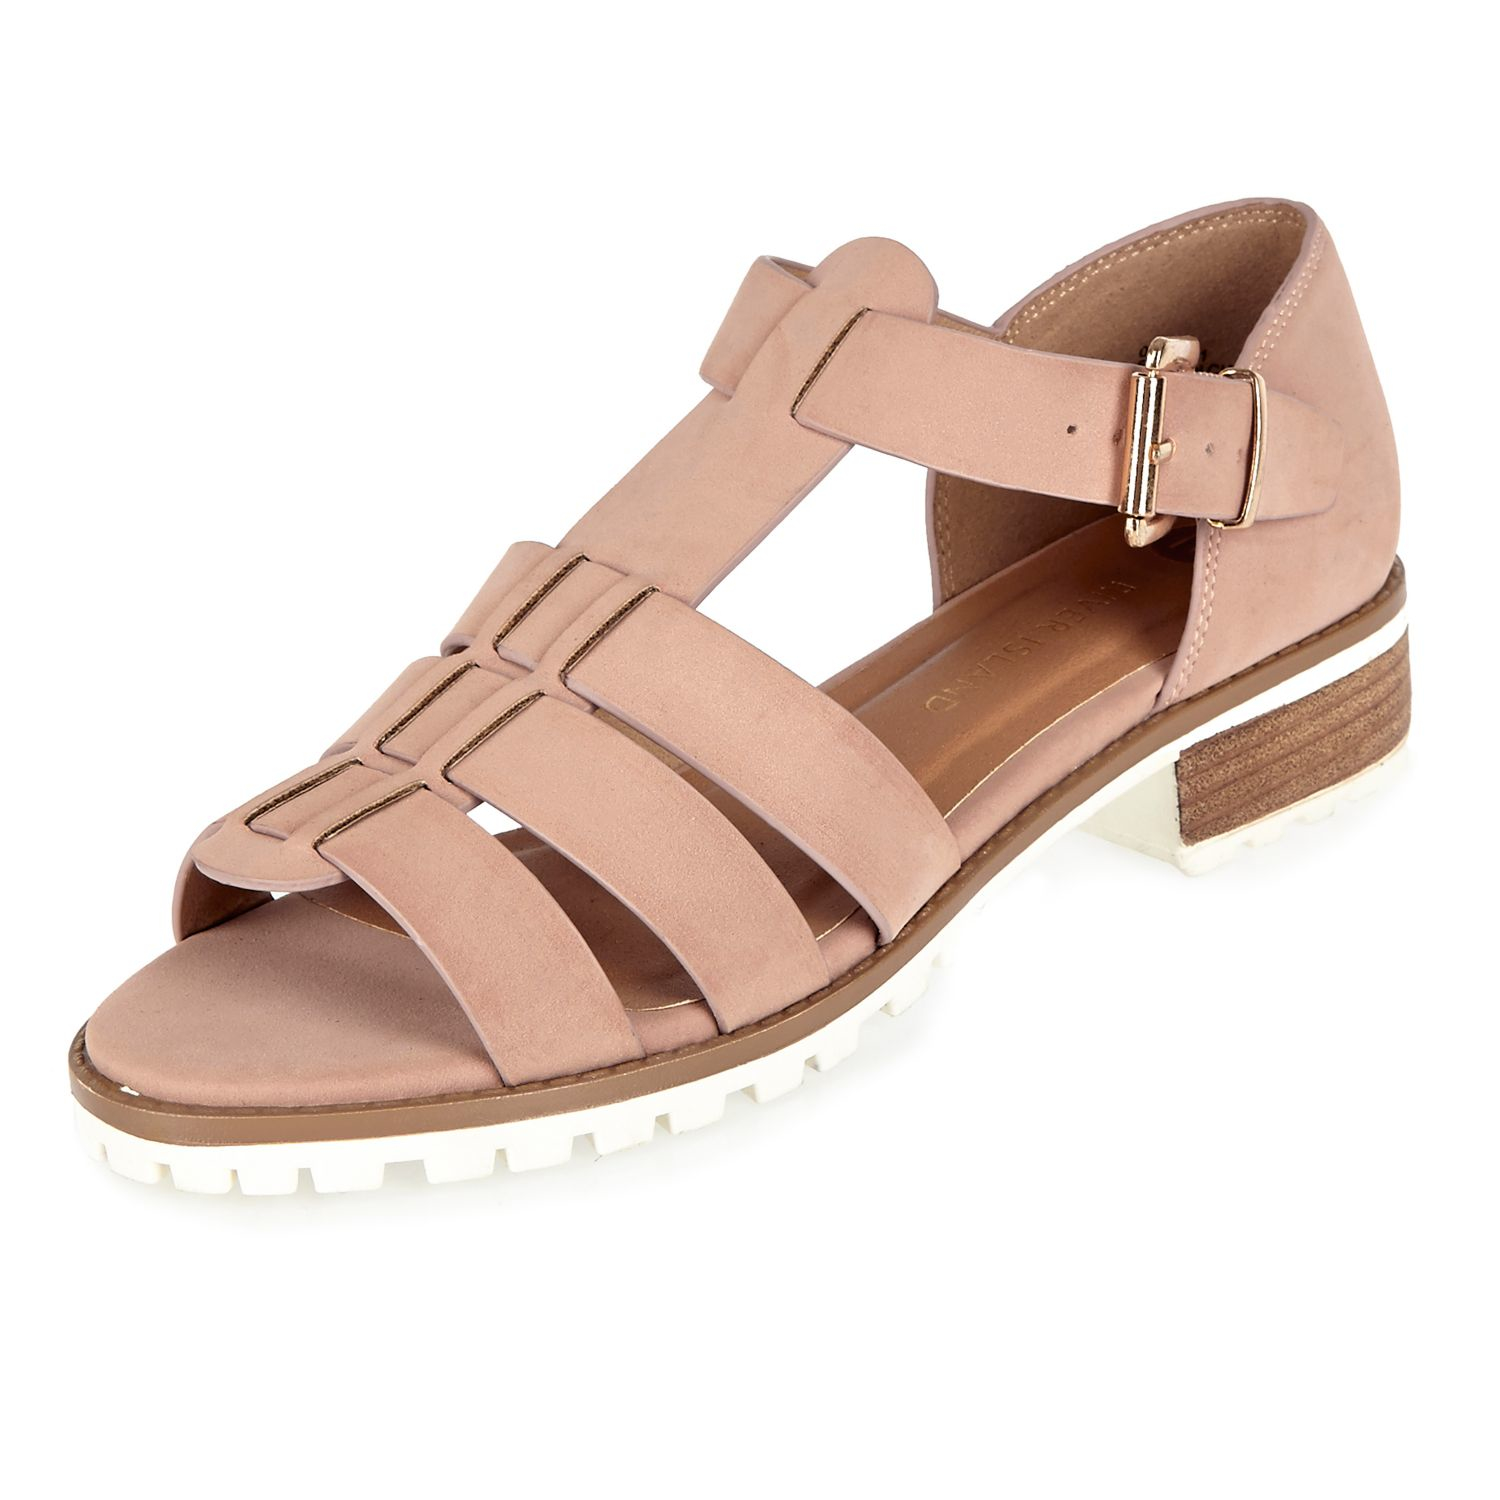 Lyst - River Island Pink Strappy Open Toe Geek Sandals In Pink-7348